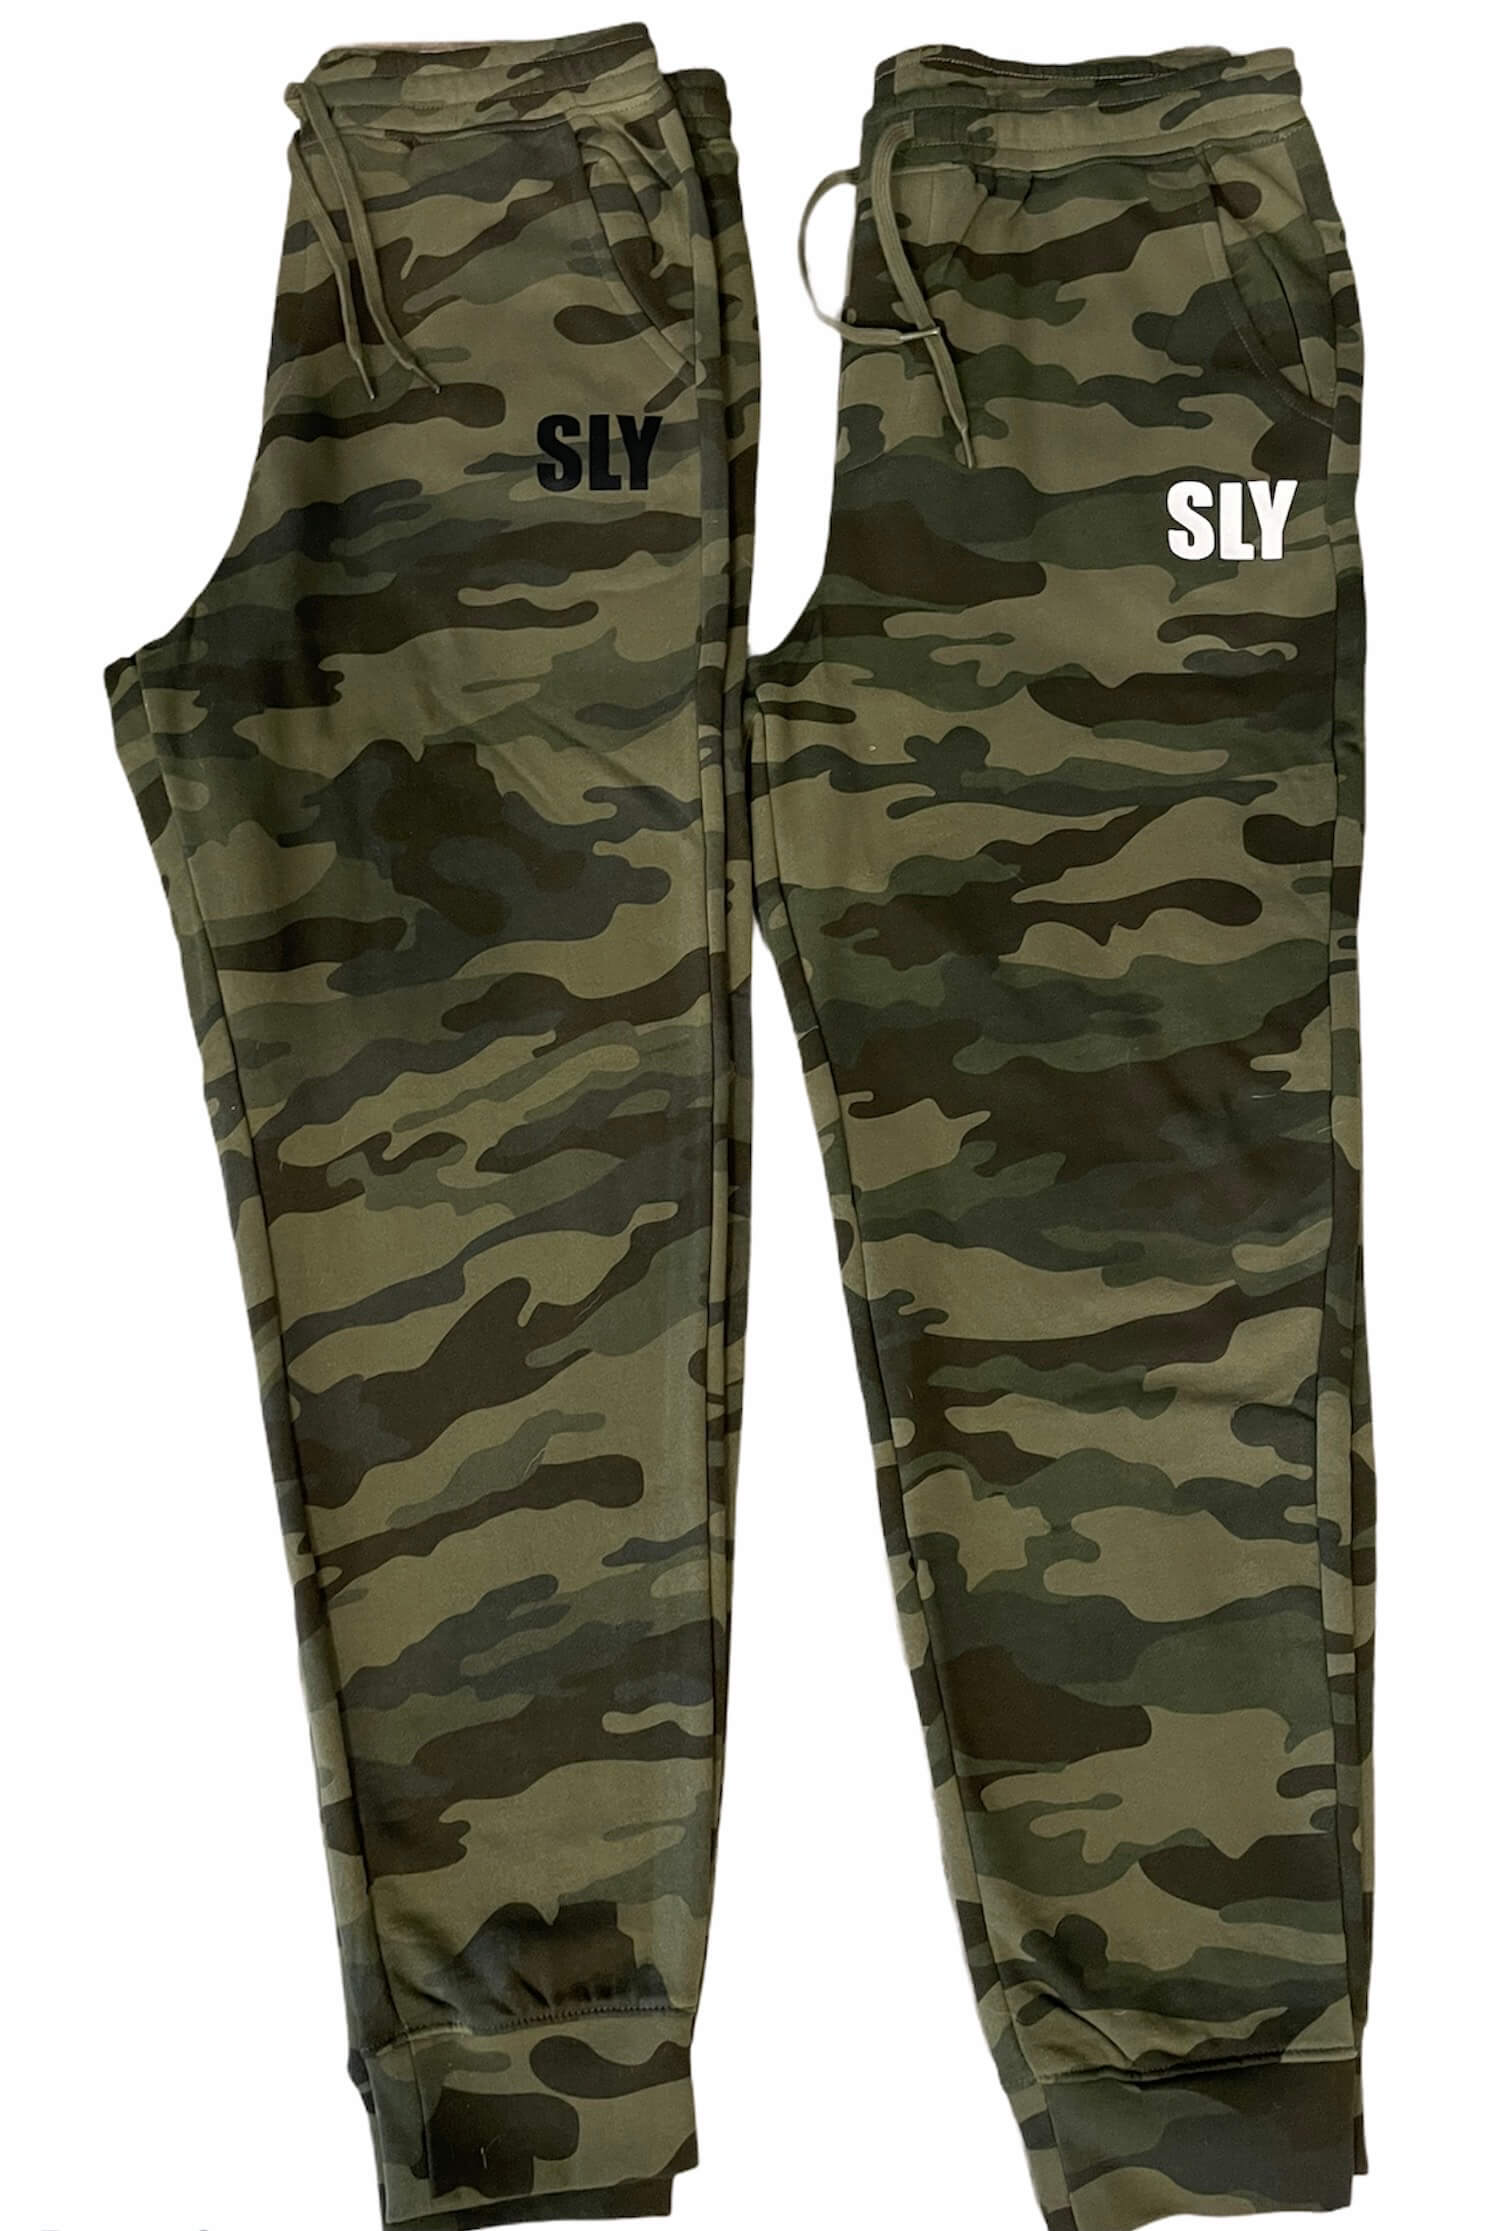 SLY Camo Sweatpants.